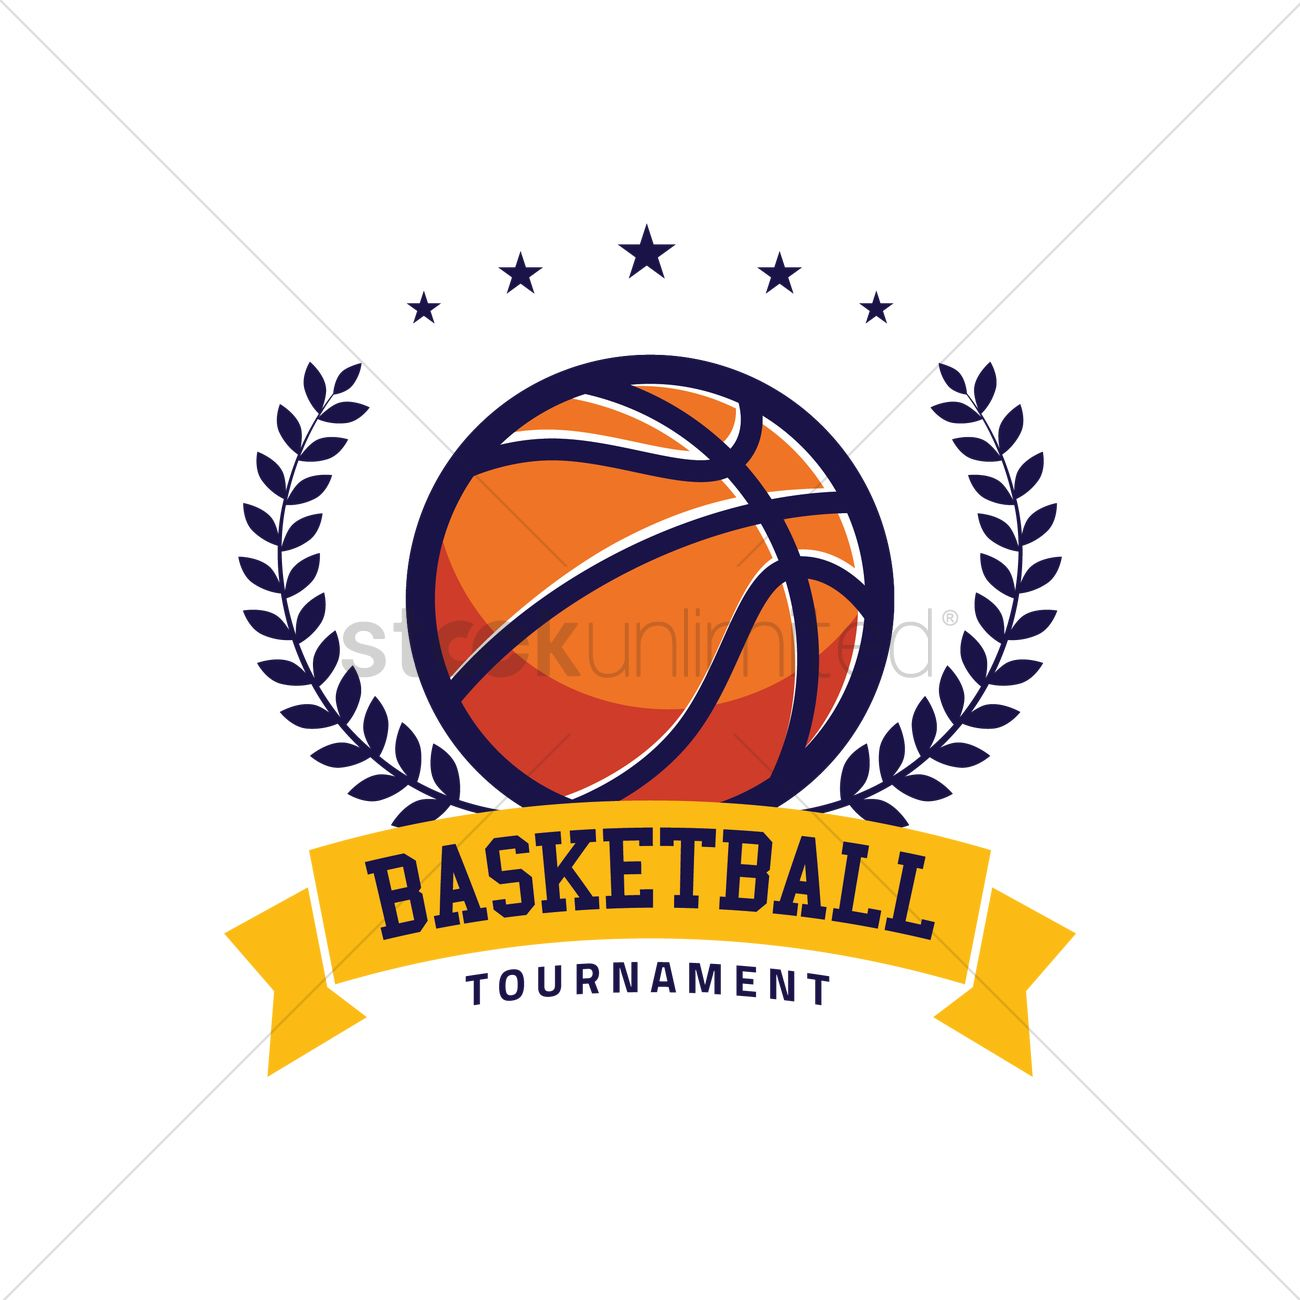 Basketball Tournament